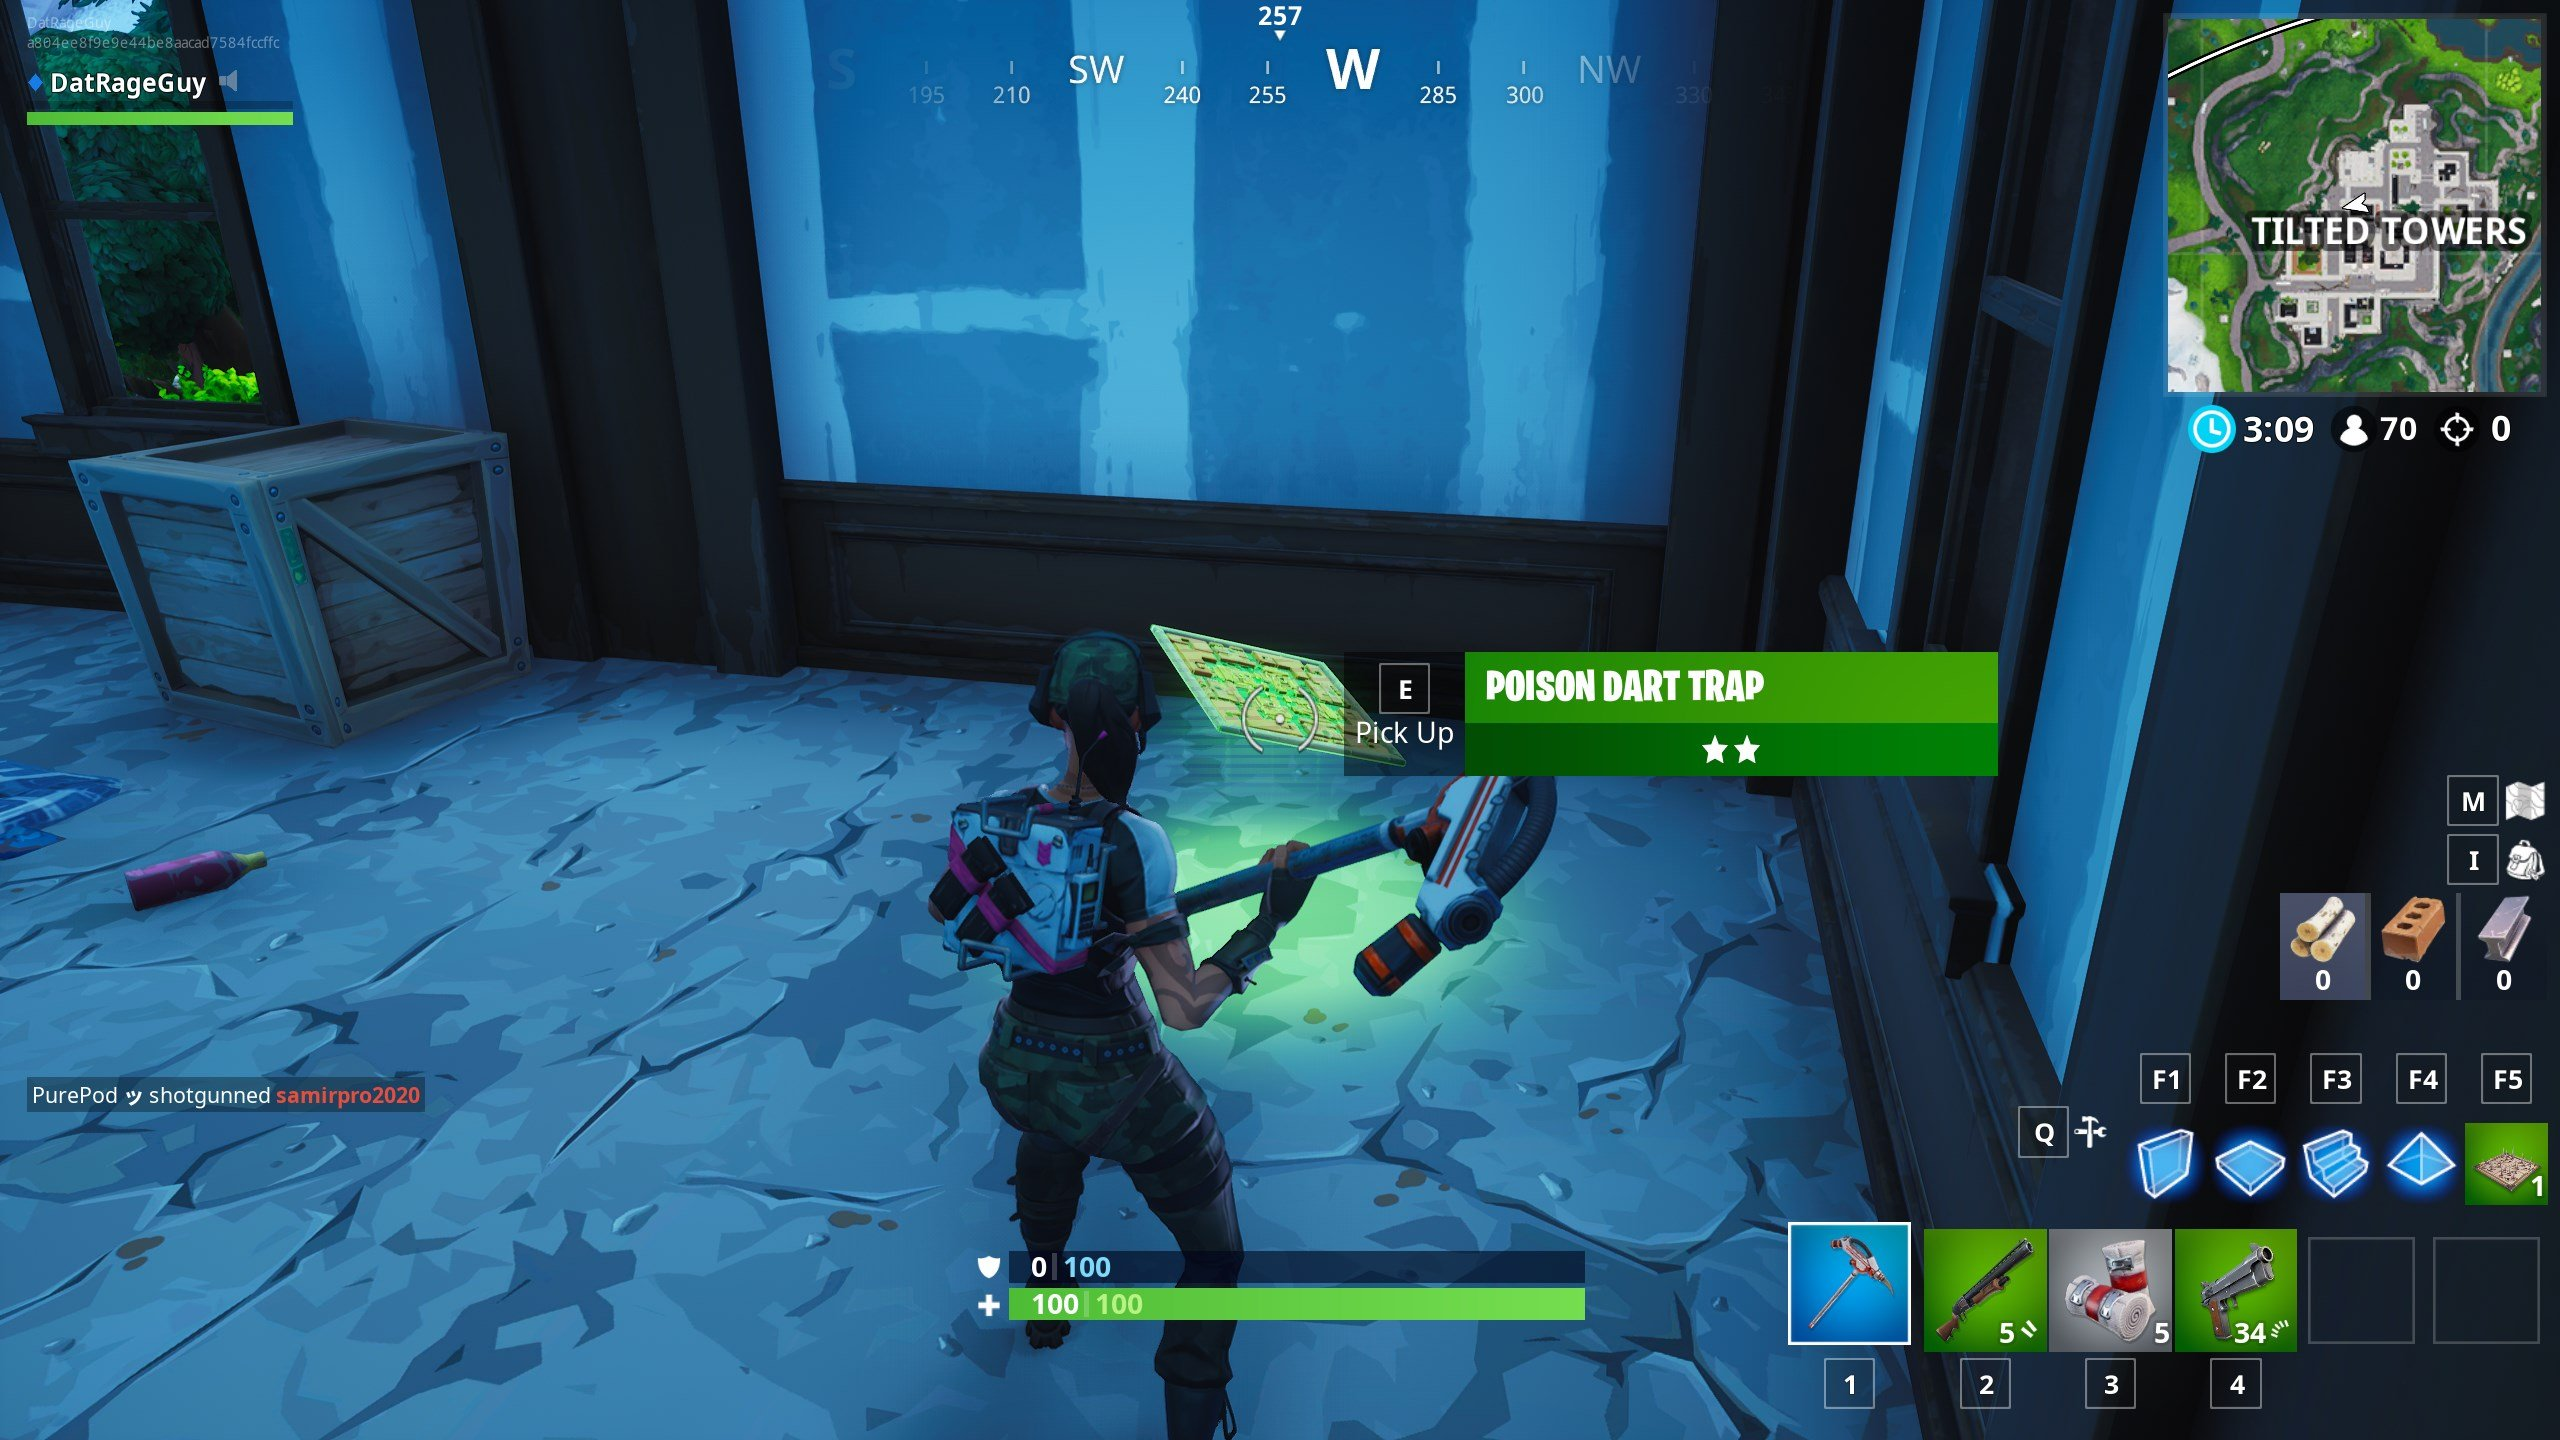 Fortnite Poison Dart Trap - where to find a Poison Dart Trap